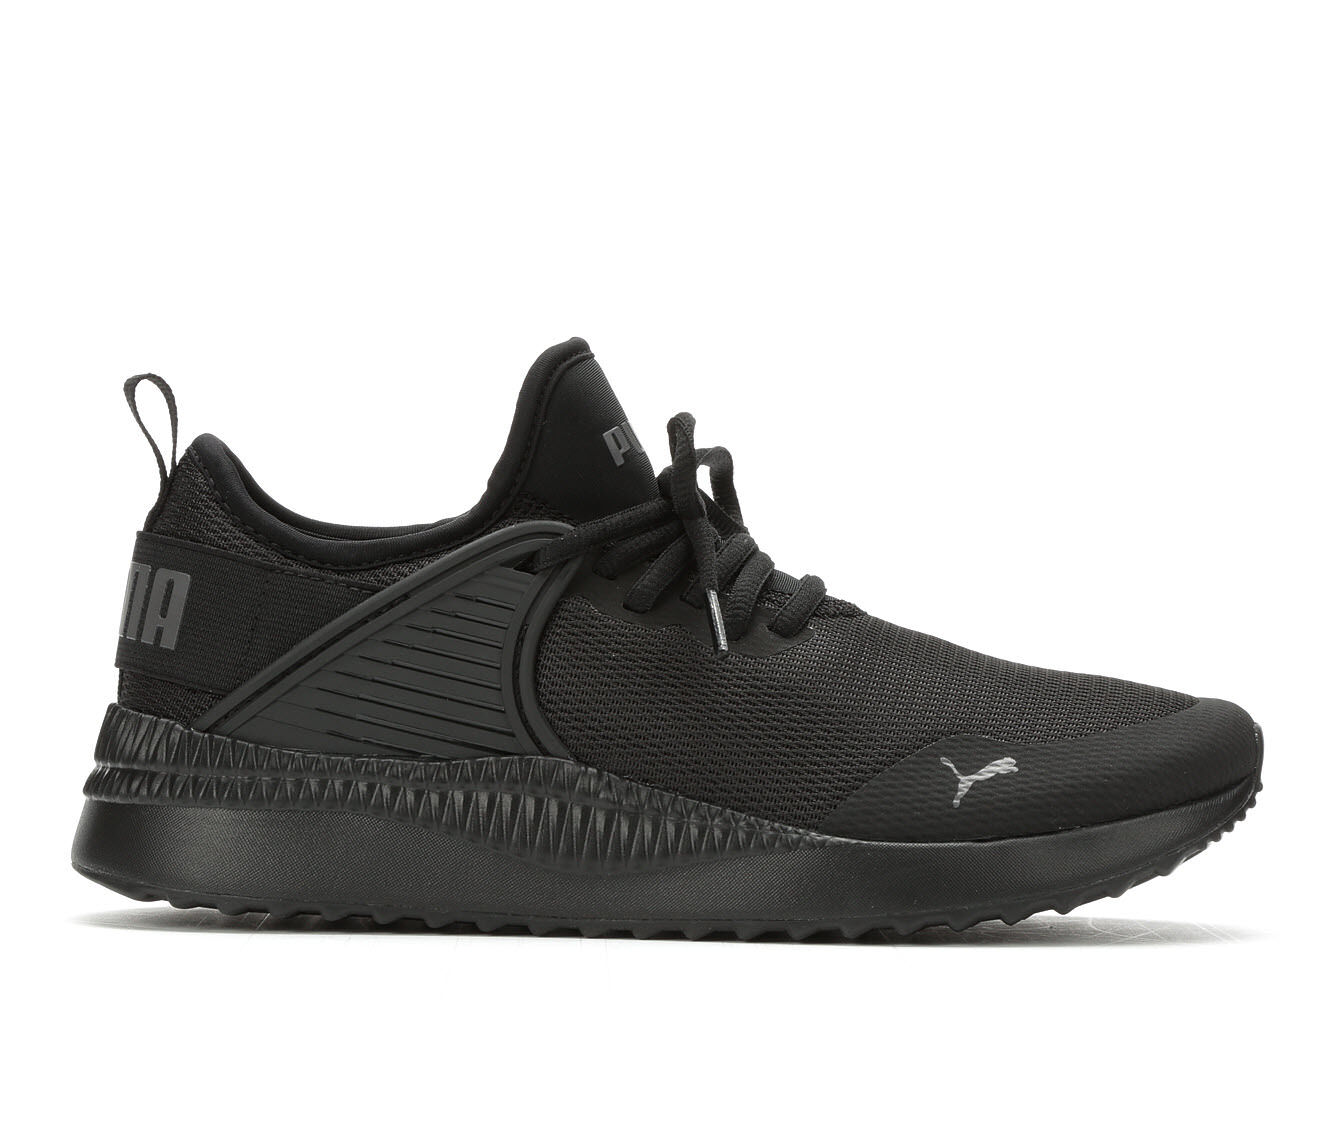 Women's Puma Pacer Cage Sneakers Black/Black